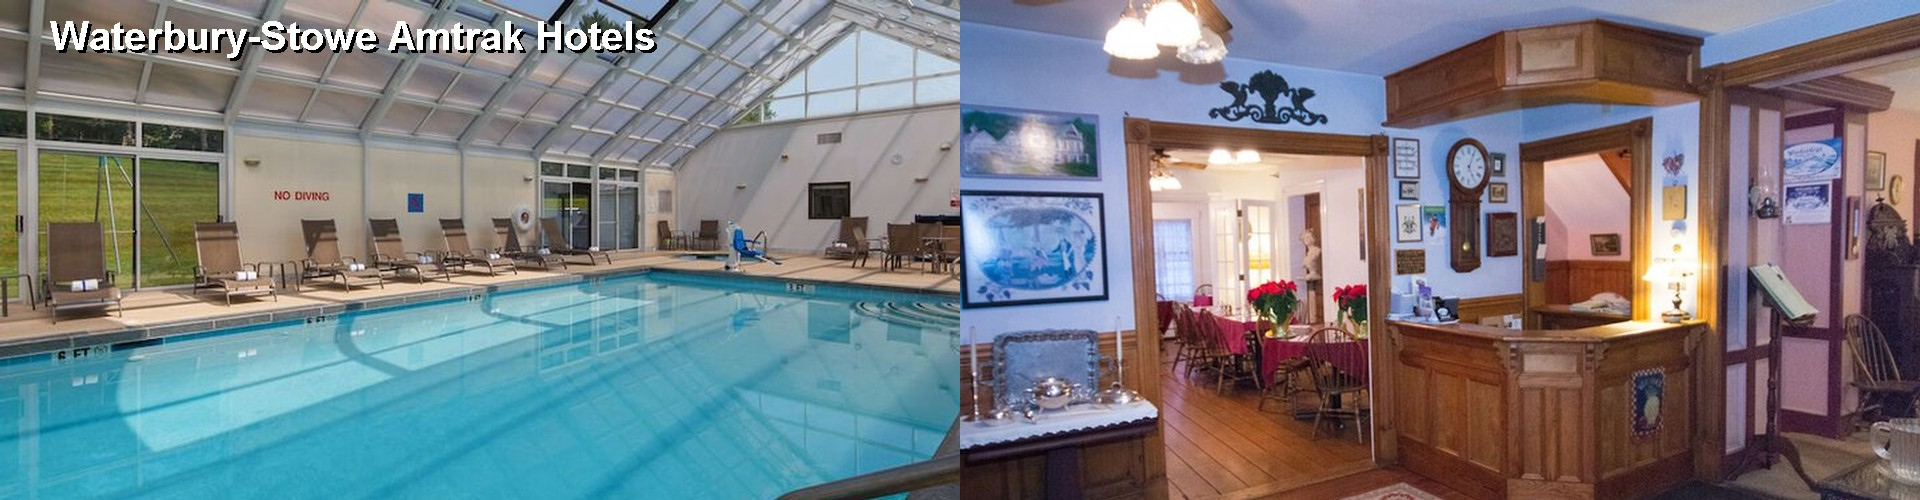 5 Best Hotels near Waterbury-Stowe Amtrak